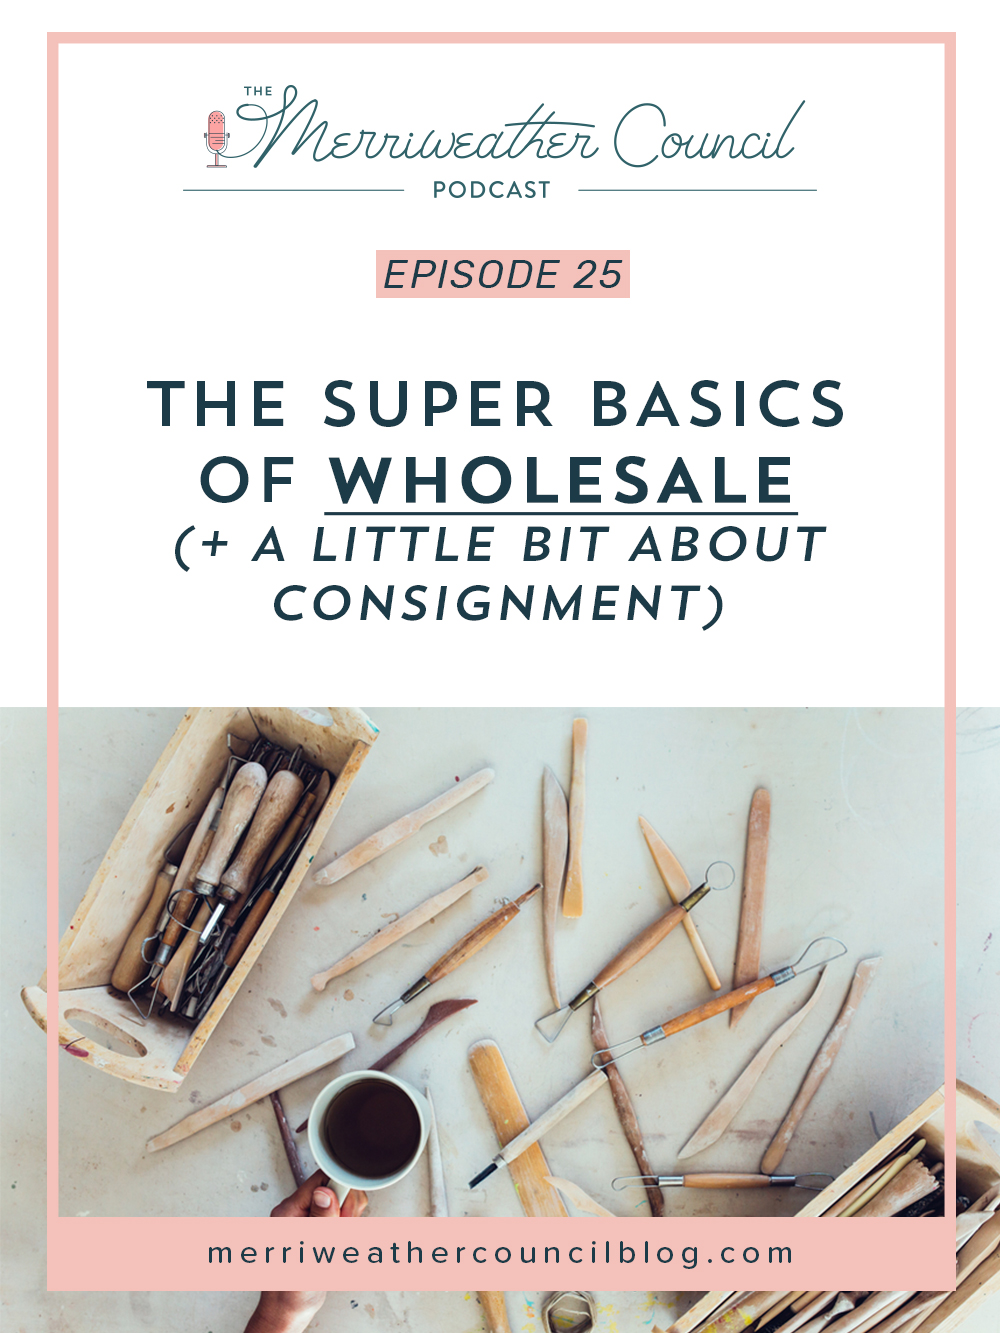 Episode 25: The Super Basics of Wholesale (And a little bit about consignment) | The Merriweather Council Podcast